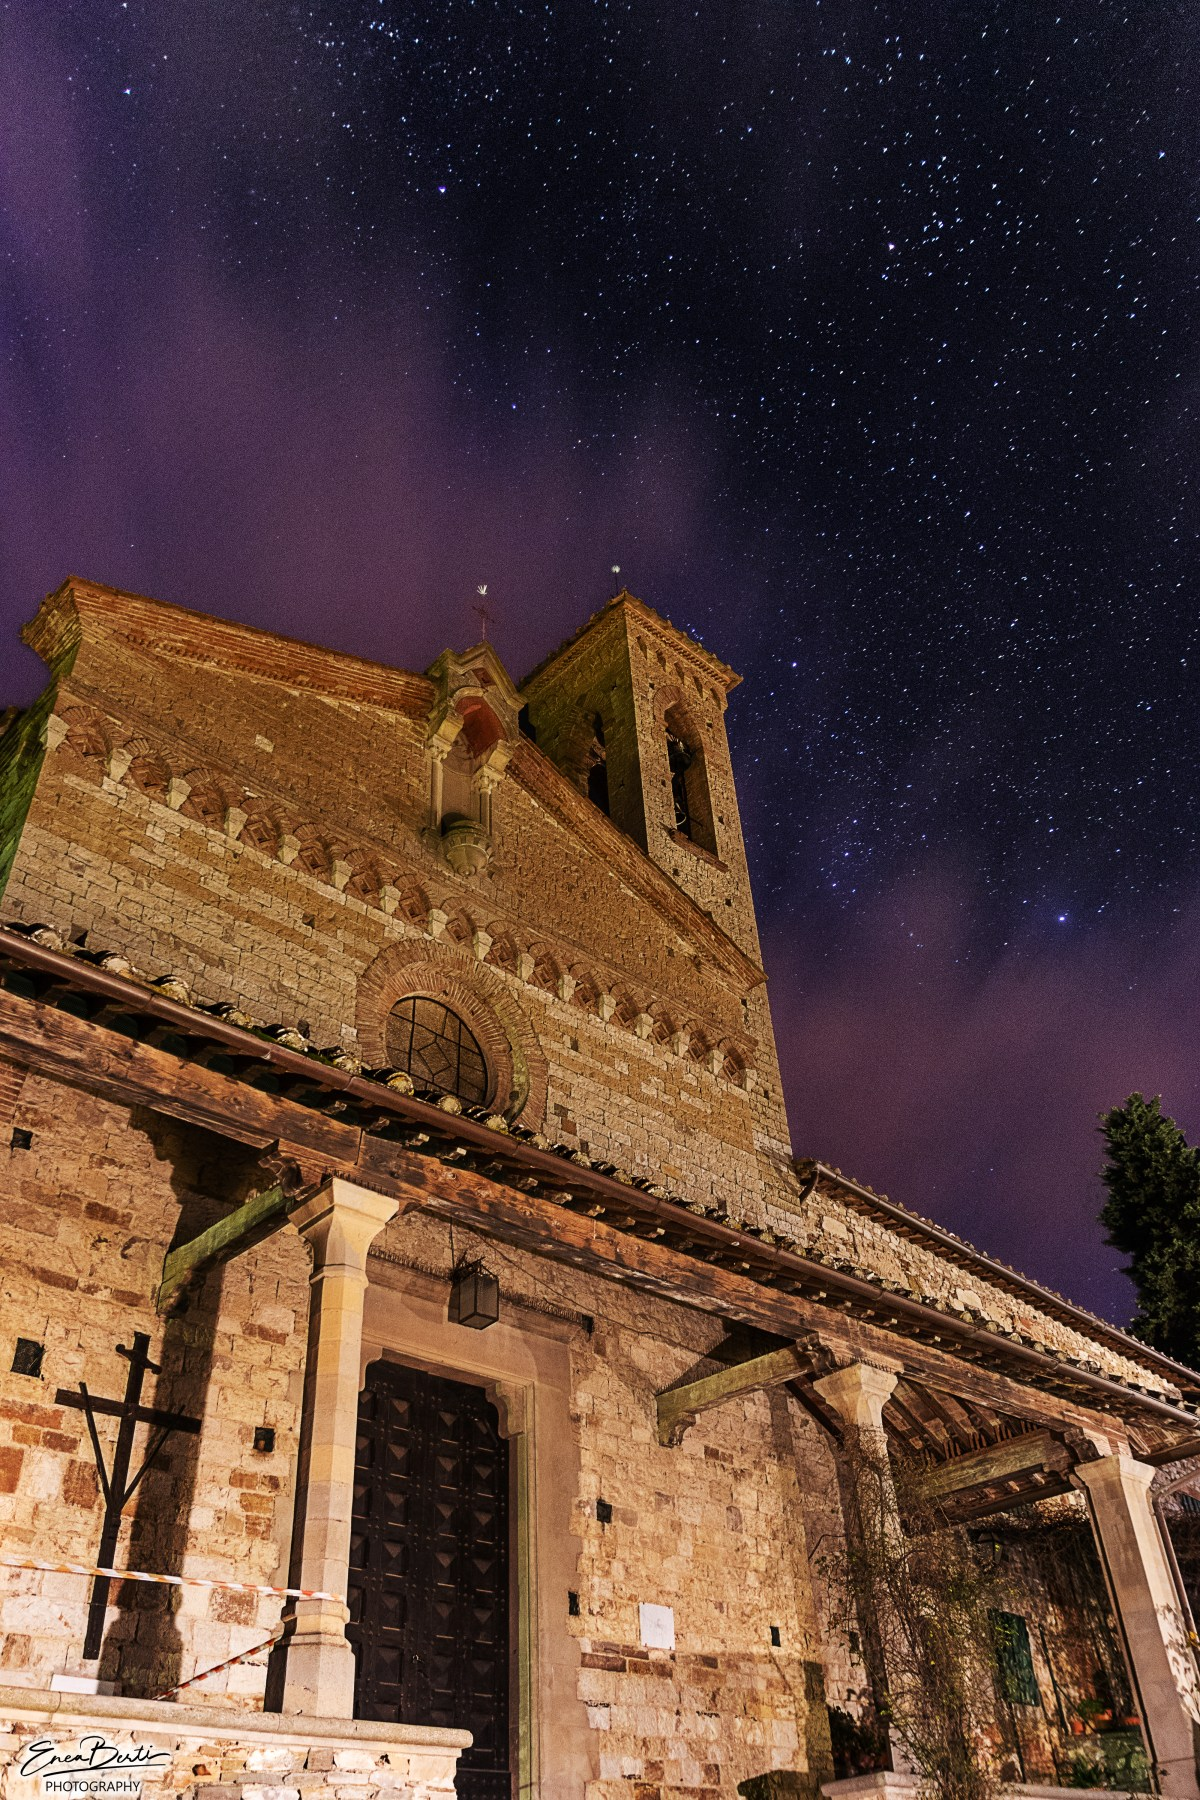 Unknown church under a cloudy and starry night